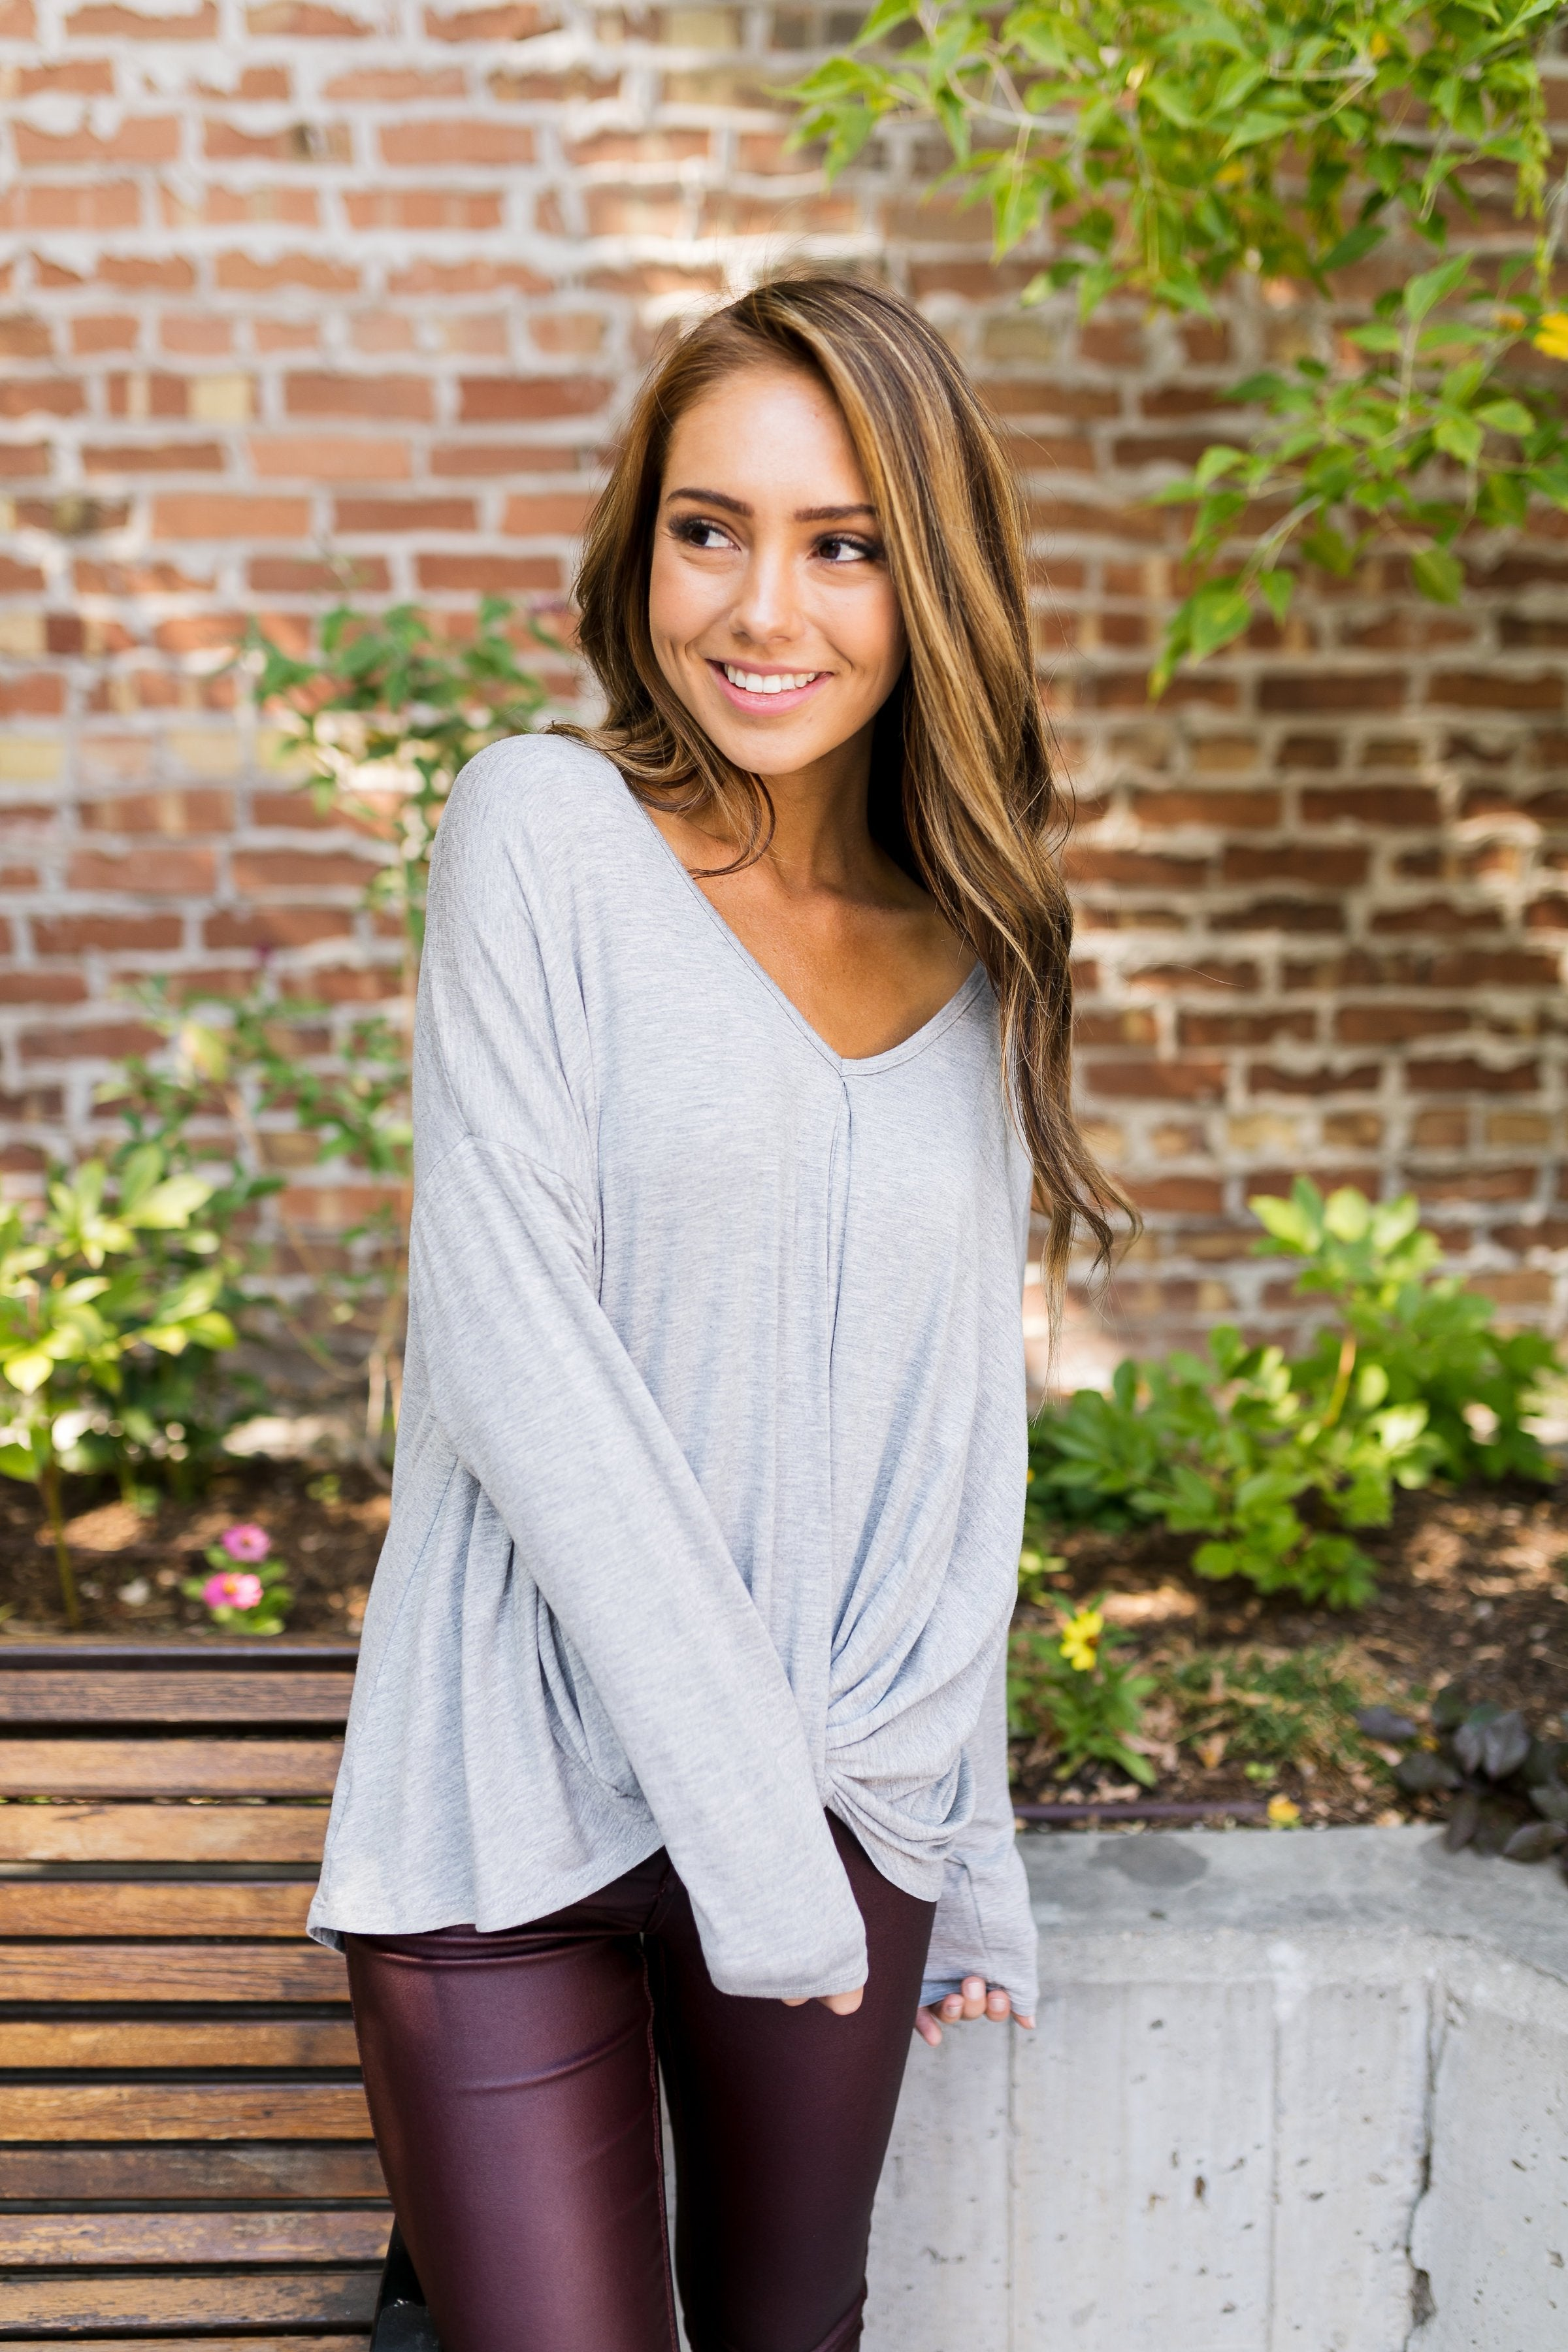 Twist And Shout Heather Gray V-Neck - ALL SALES FINAL